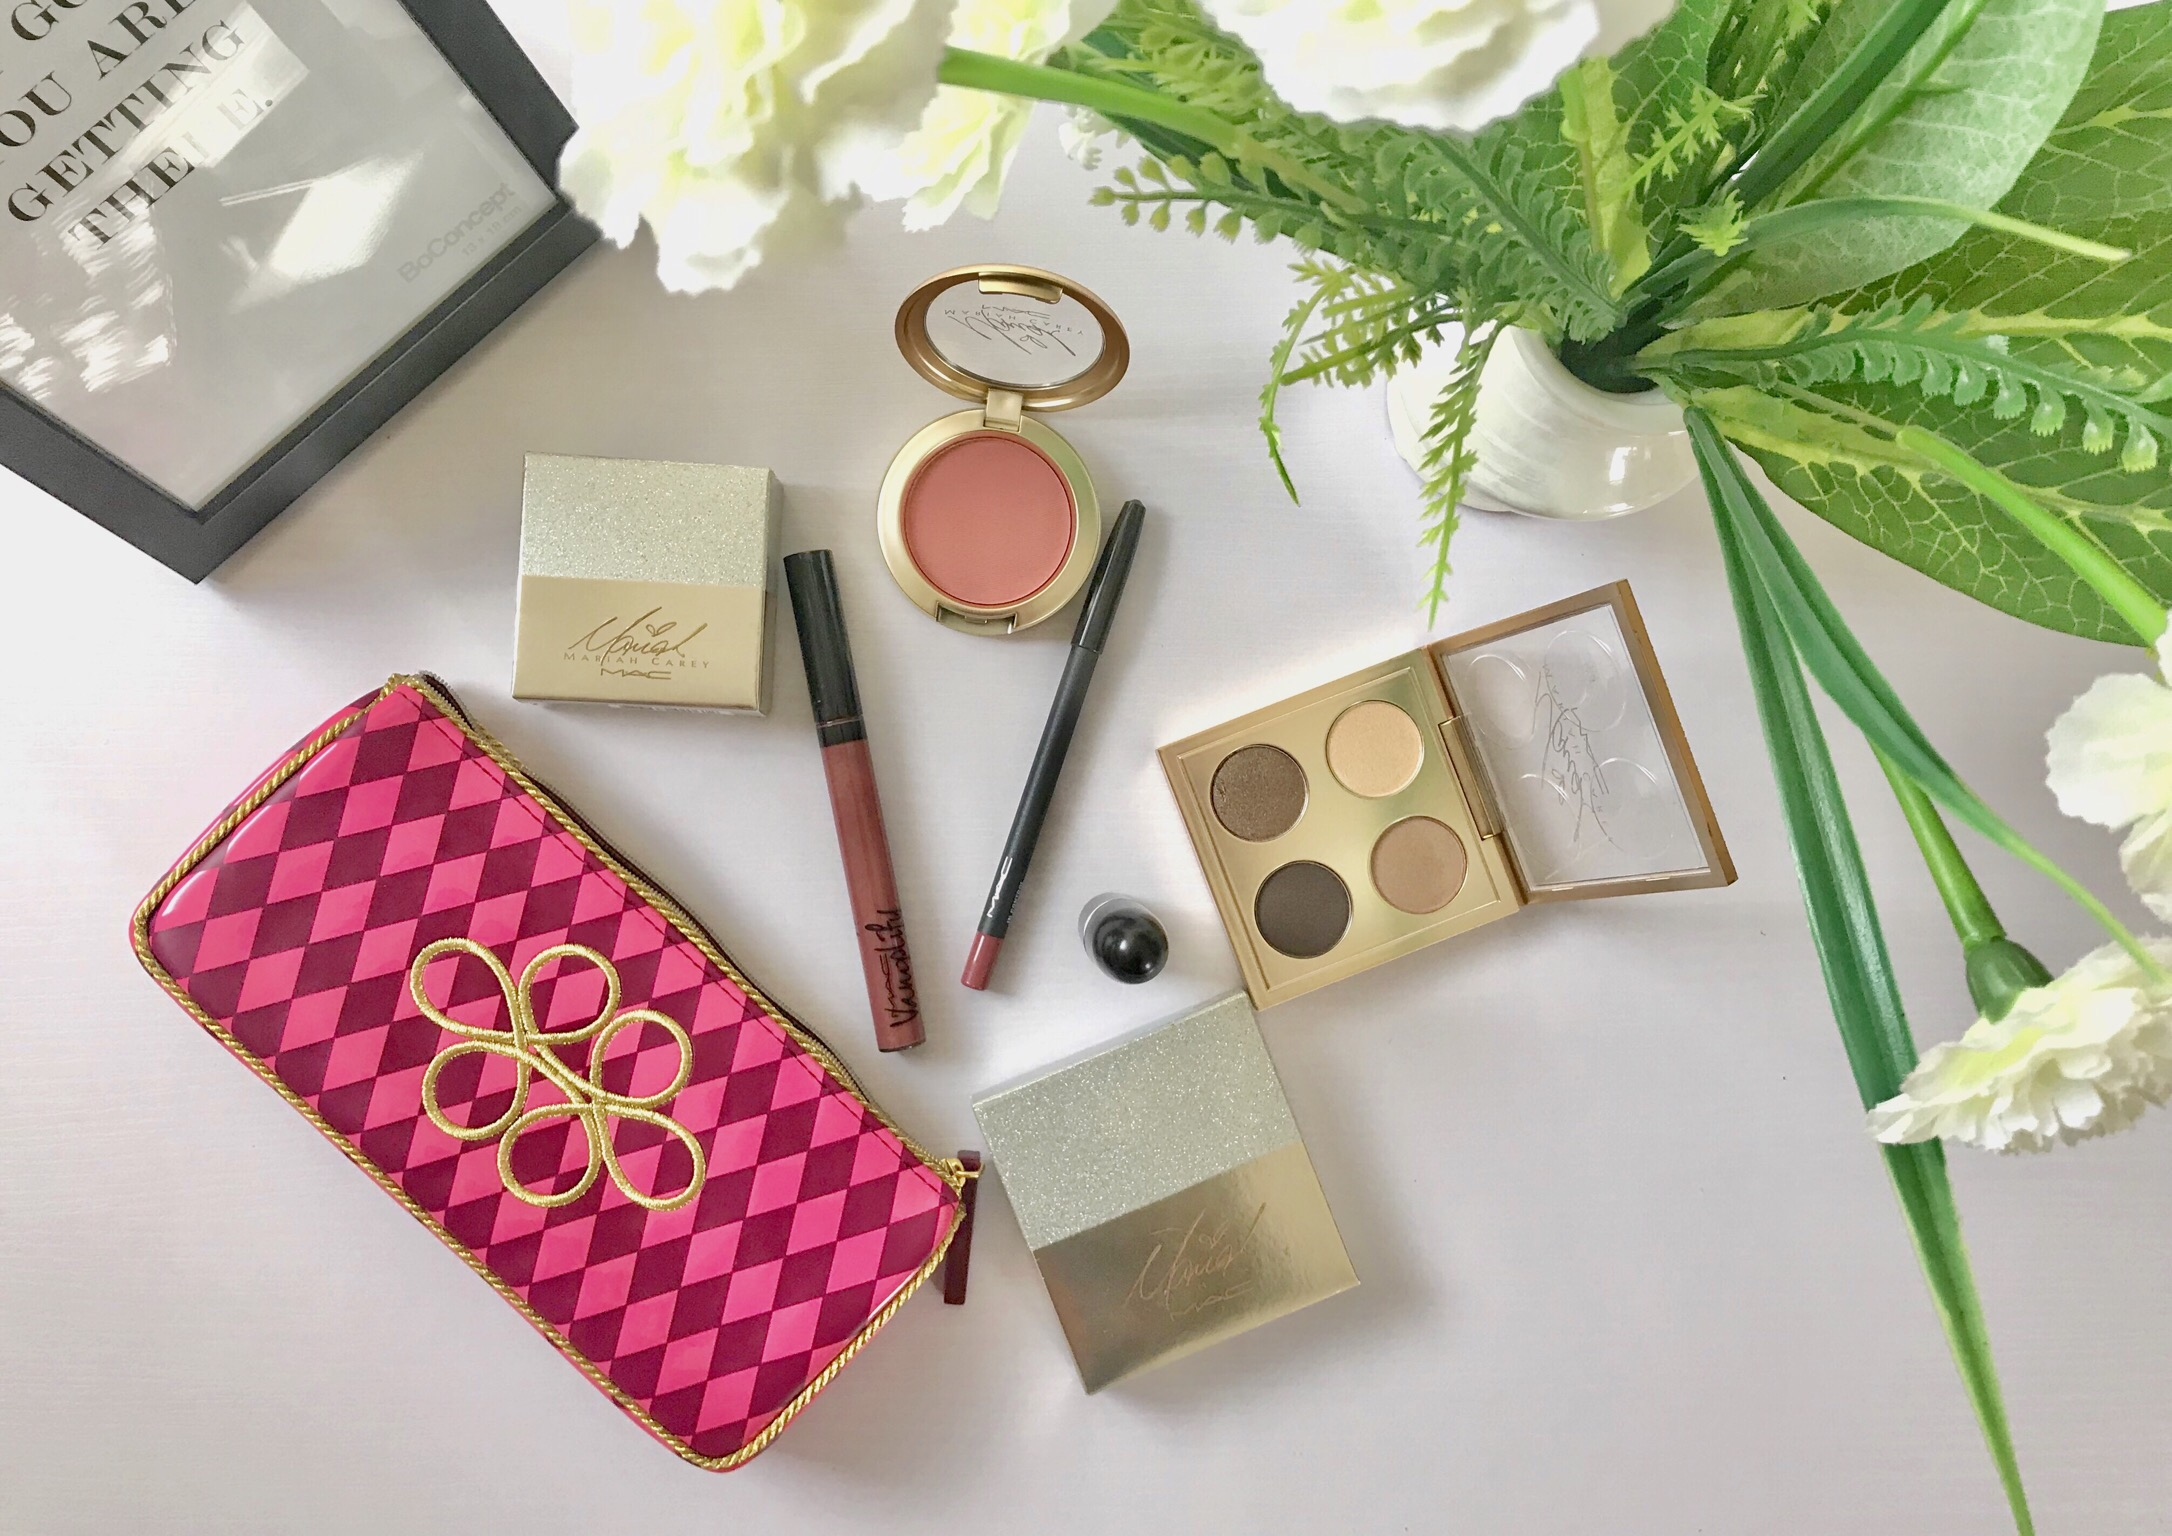 Mac Cosmetics Nutcracker sweet nude lip bag and Mariah Carey collection